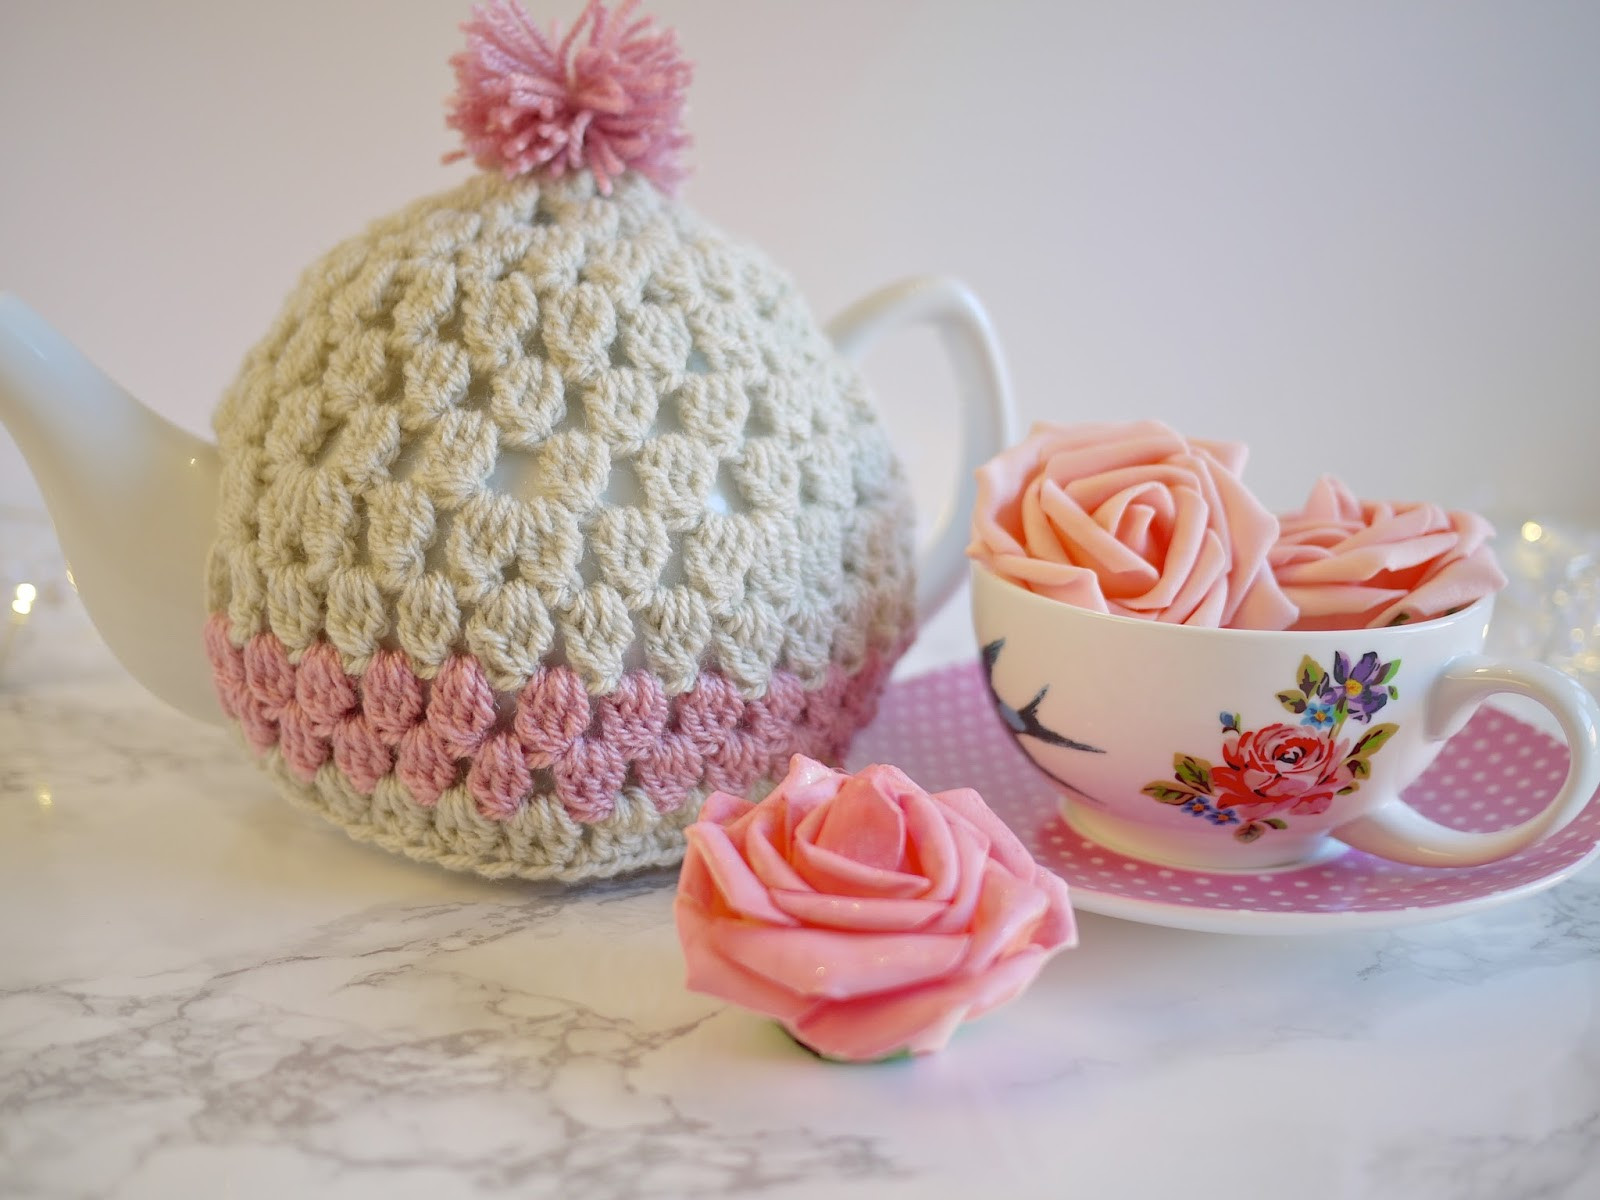 Crochet Tea Cosy Pattern Bella Coco by Sarah Jayne